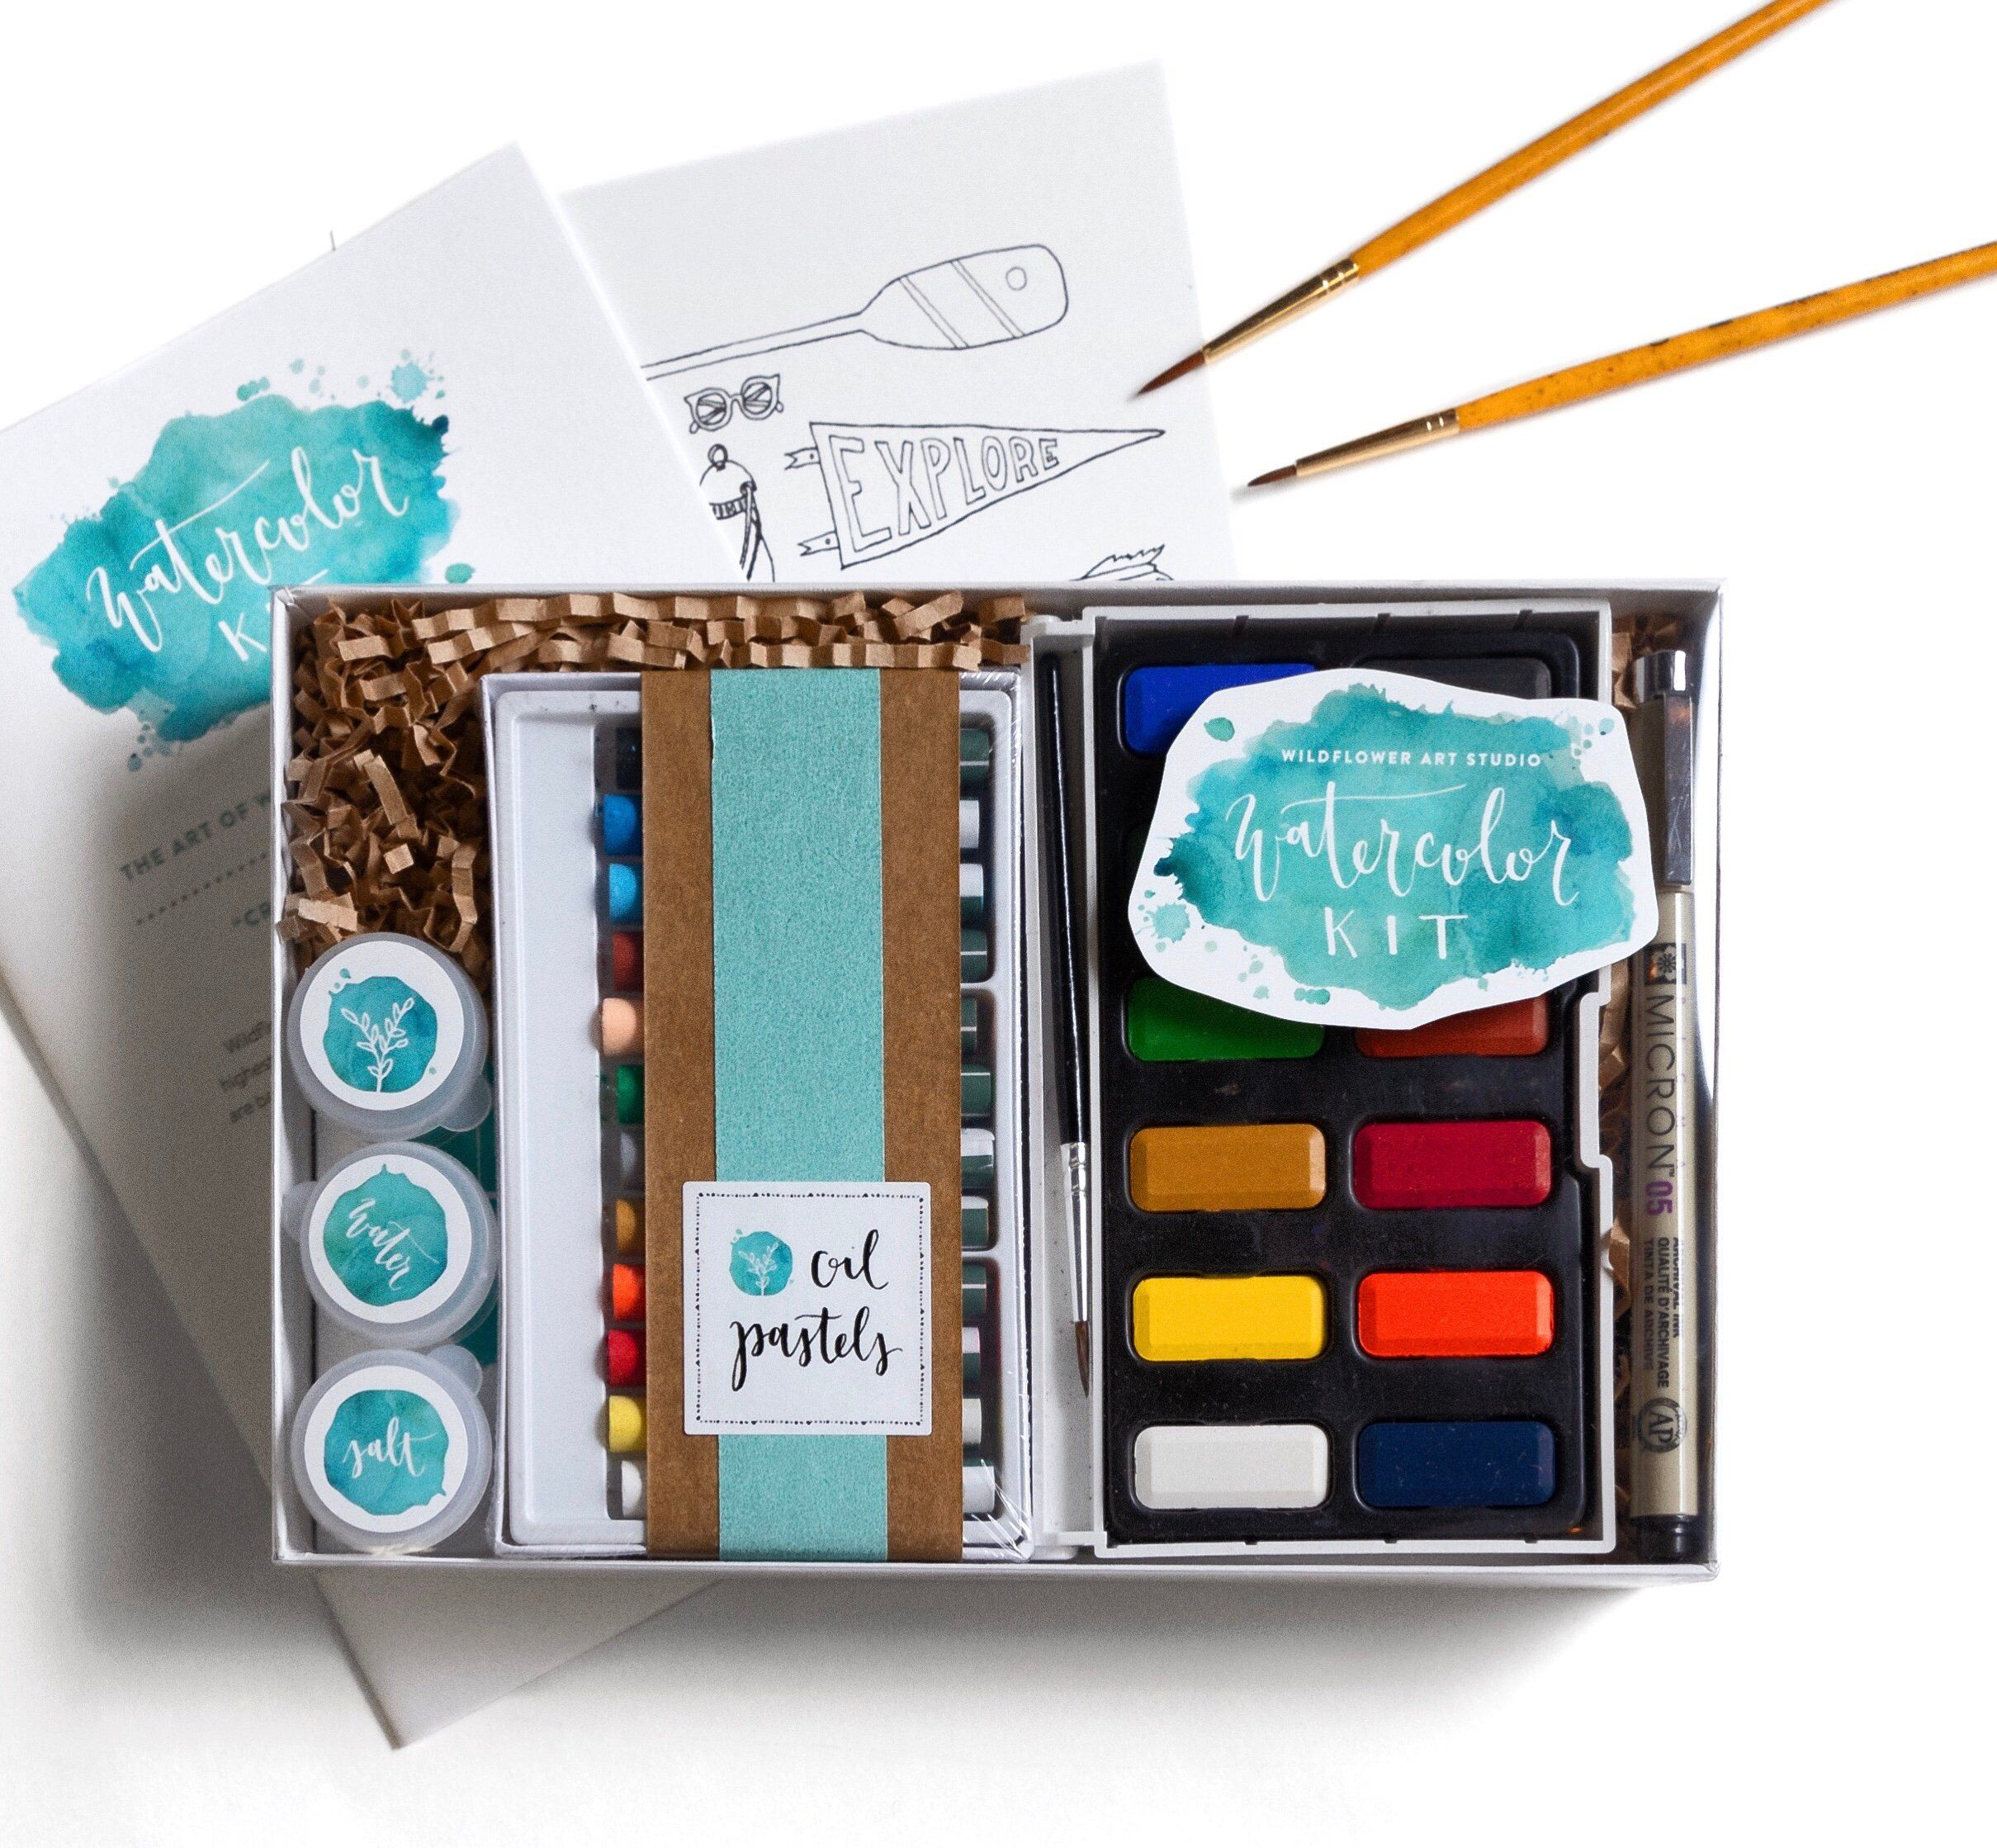 Diy Watercolor Kit For Beginners Instruction Book Supplies